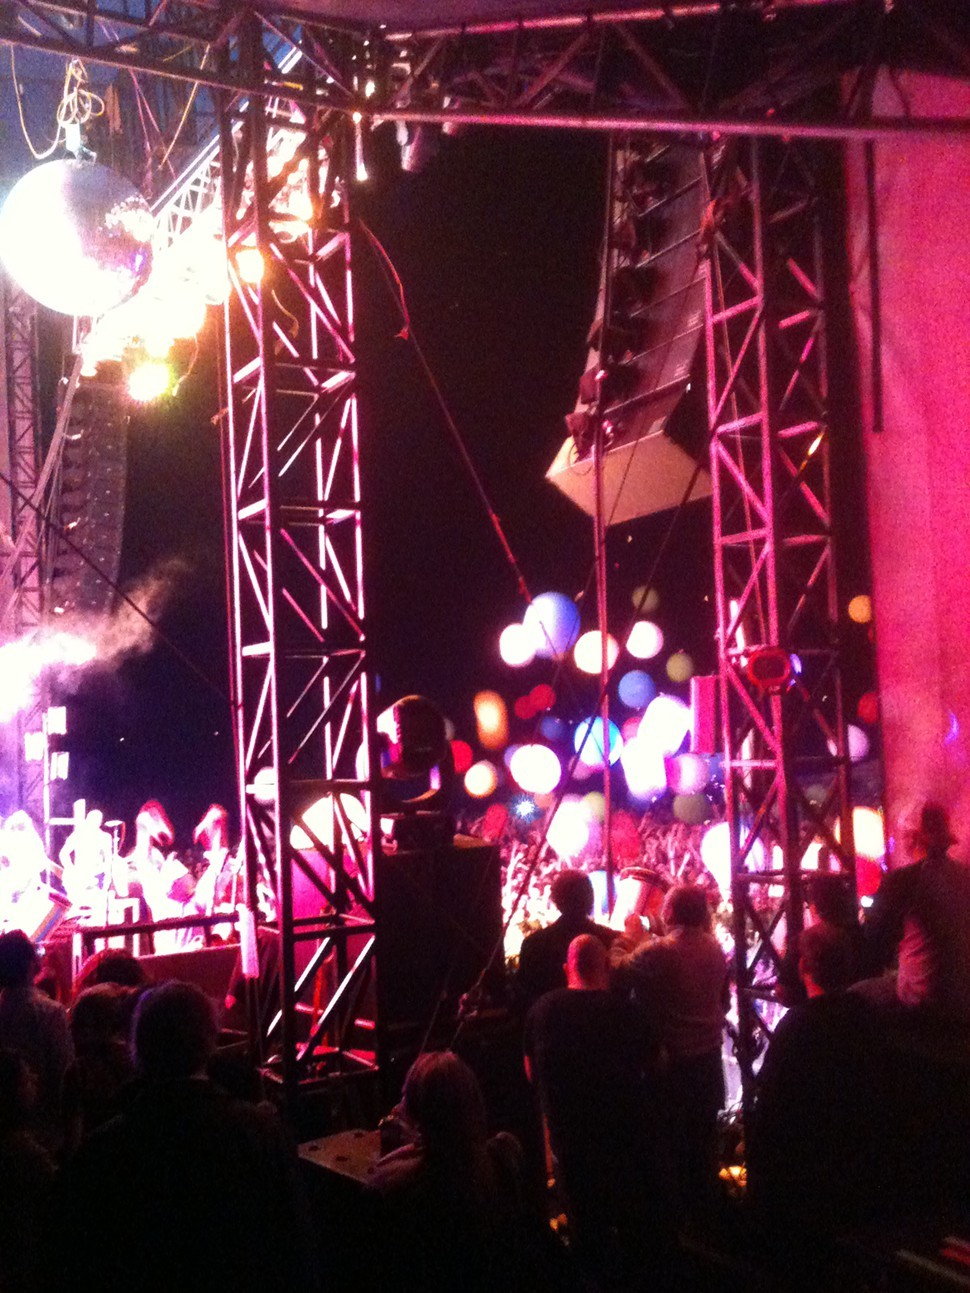 The opening to the Flaming Lips bomb-tastic show